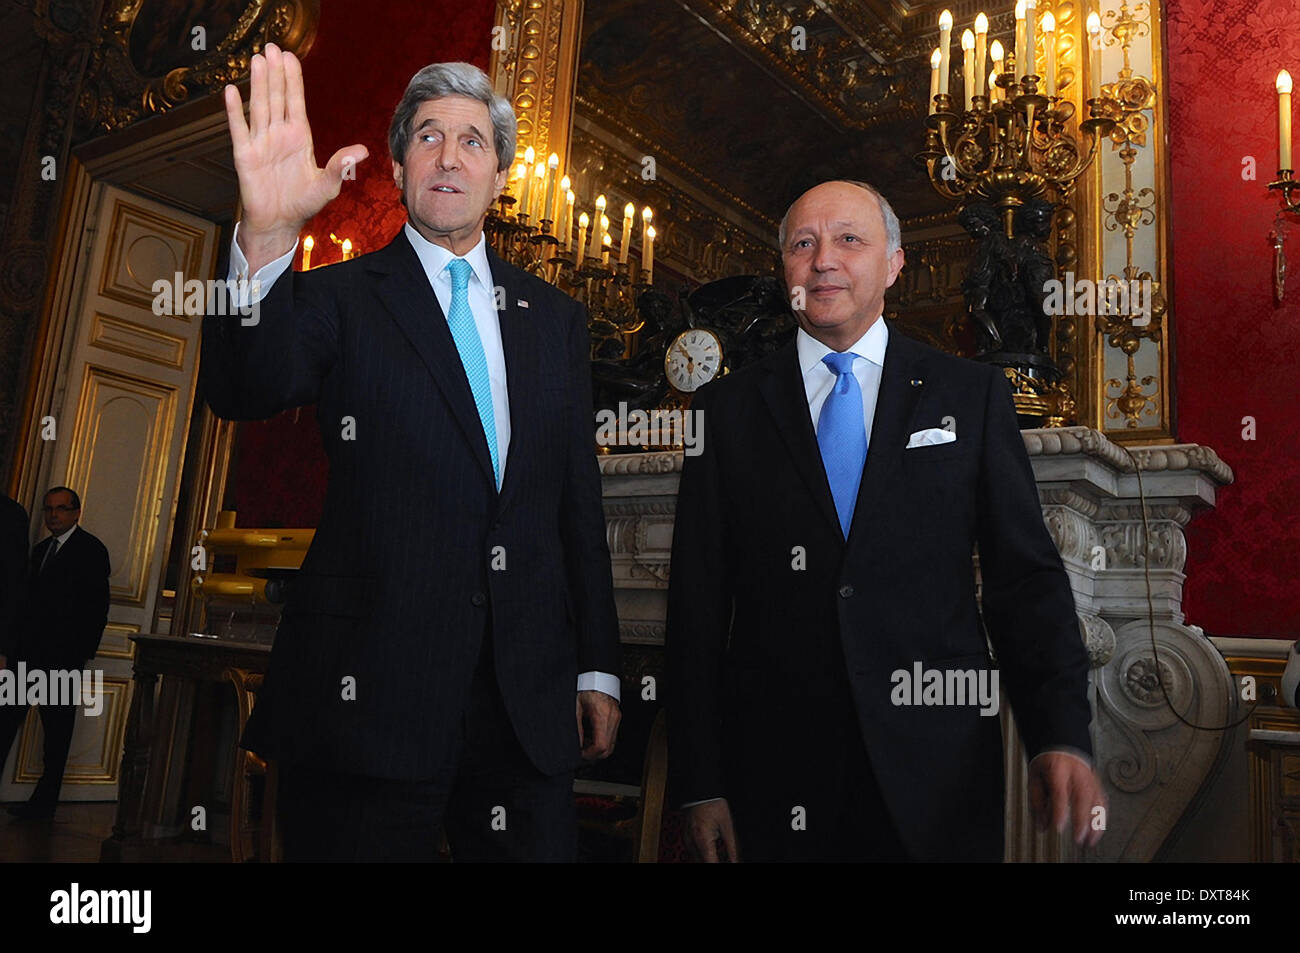 US Secretary of State John Kerry and French Foreign Minister Laurent Fabius meet to discuss the crisis in Ukraine March 30, 2014 in Paris, France. - Stock Image